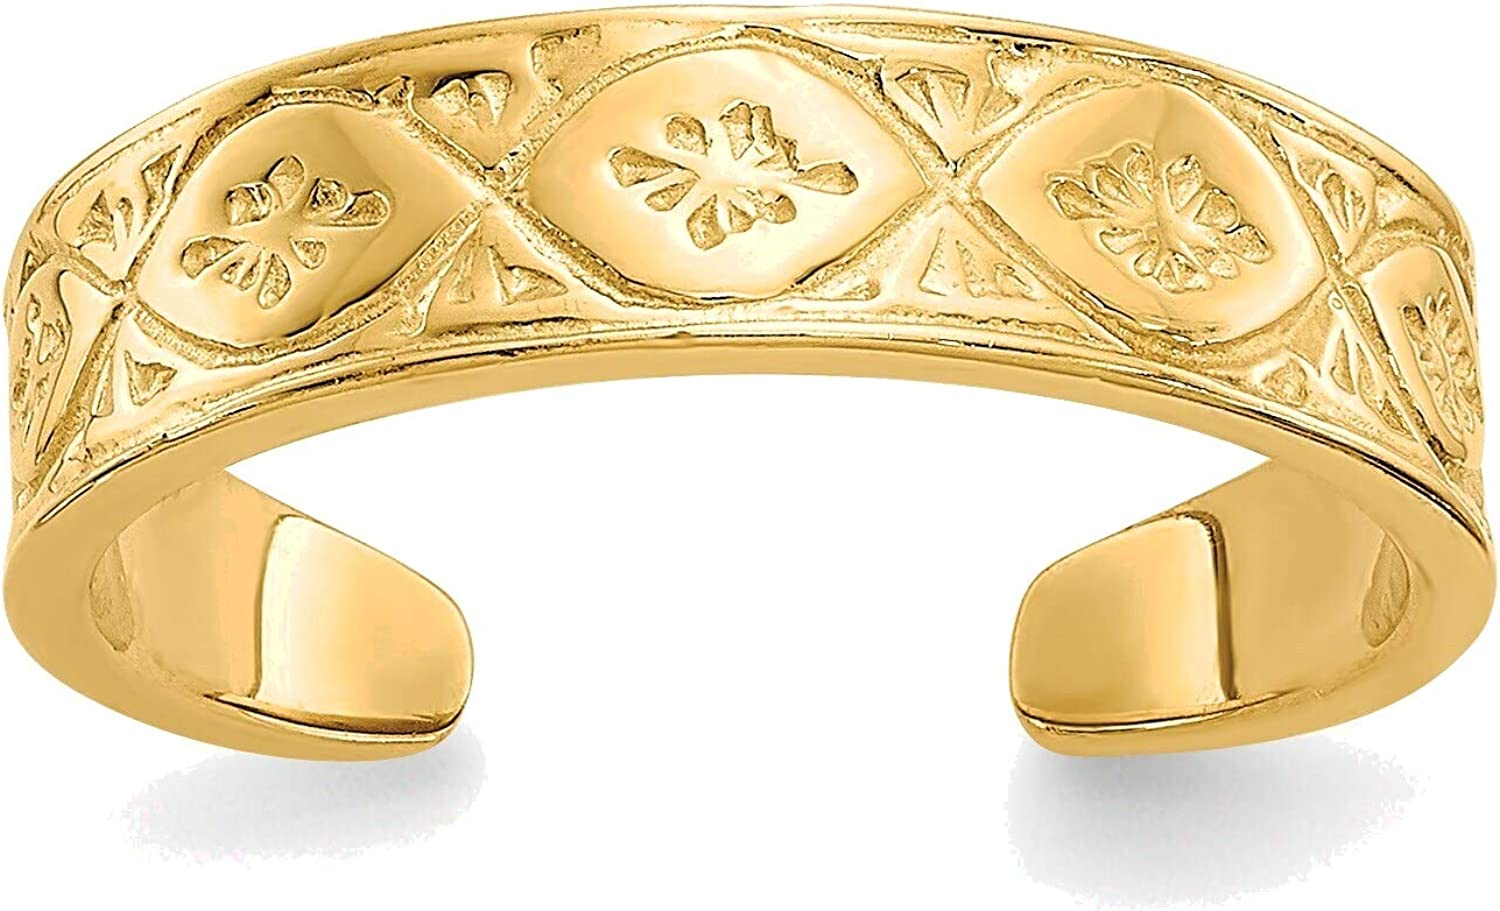 Bonyak Jewelry Polished Wave with Flower Center Toe Ring in 14K Yellow Gold in Size 11